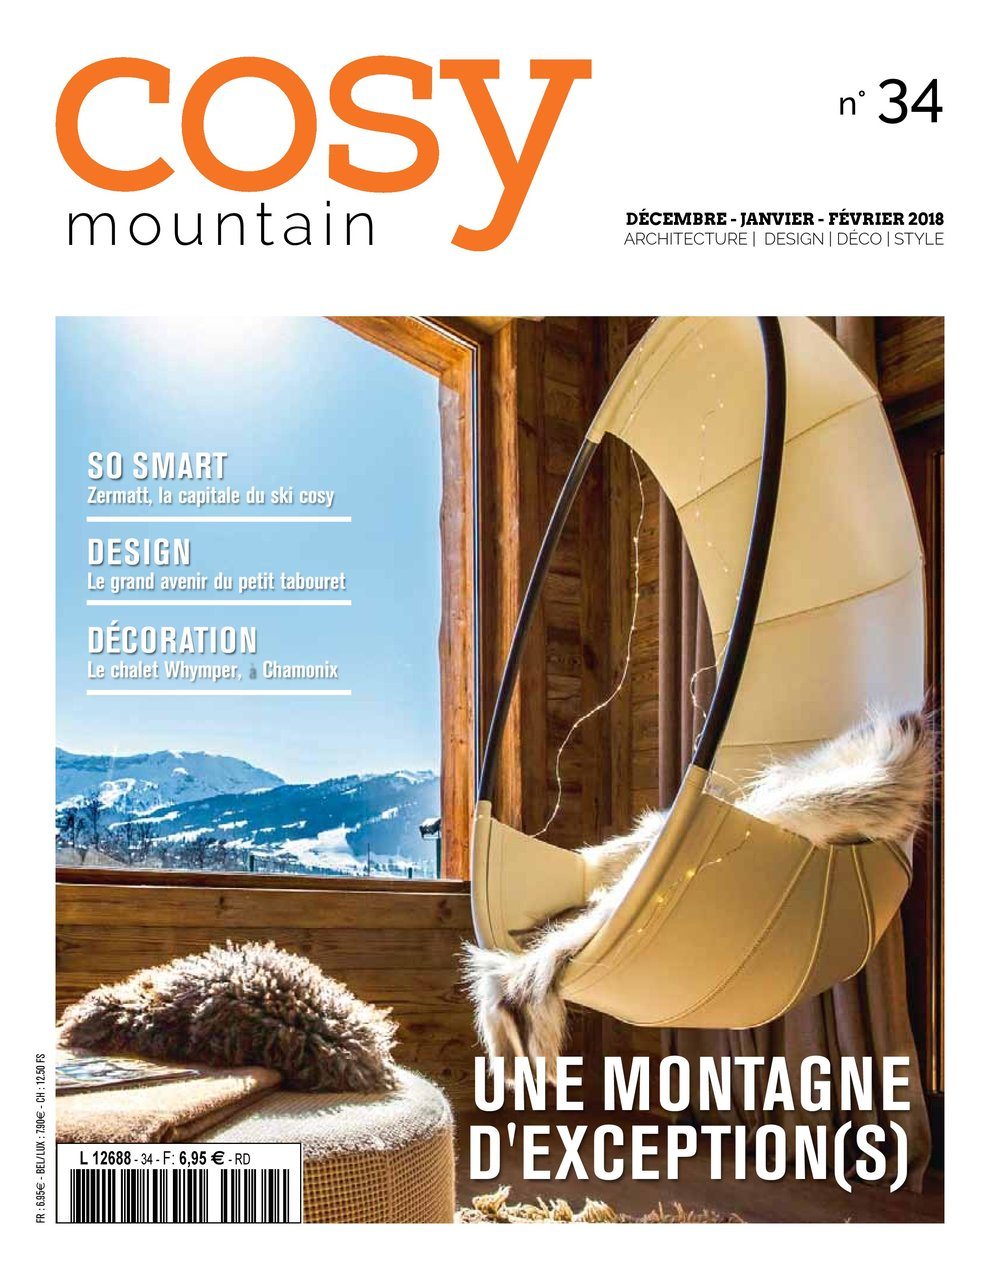 COSY MOUNTAIN 34 couverture-page-001.jpg